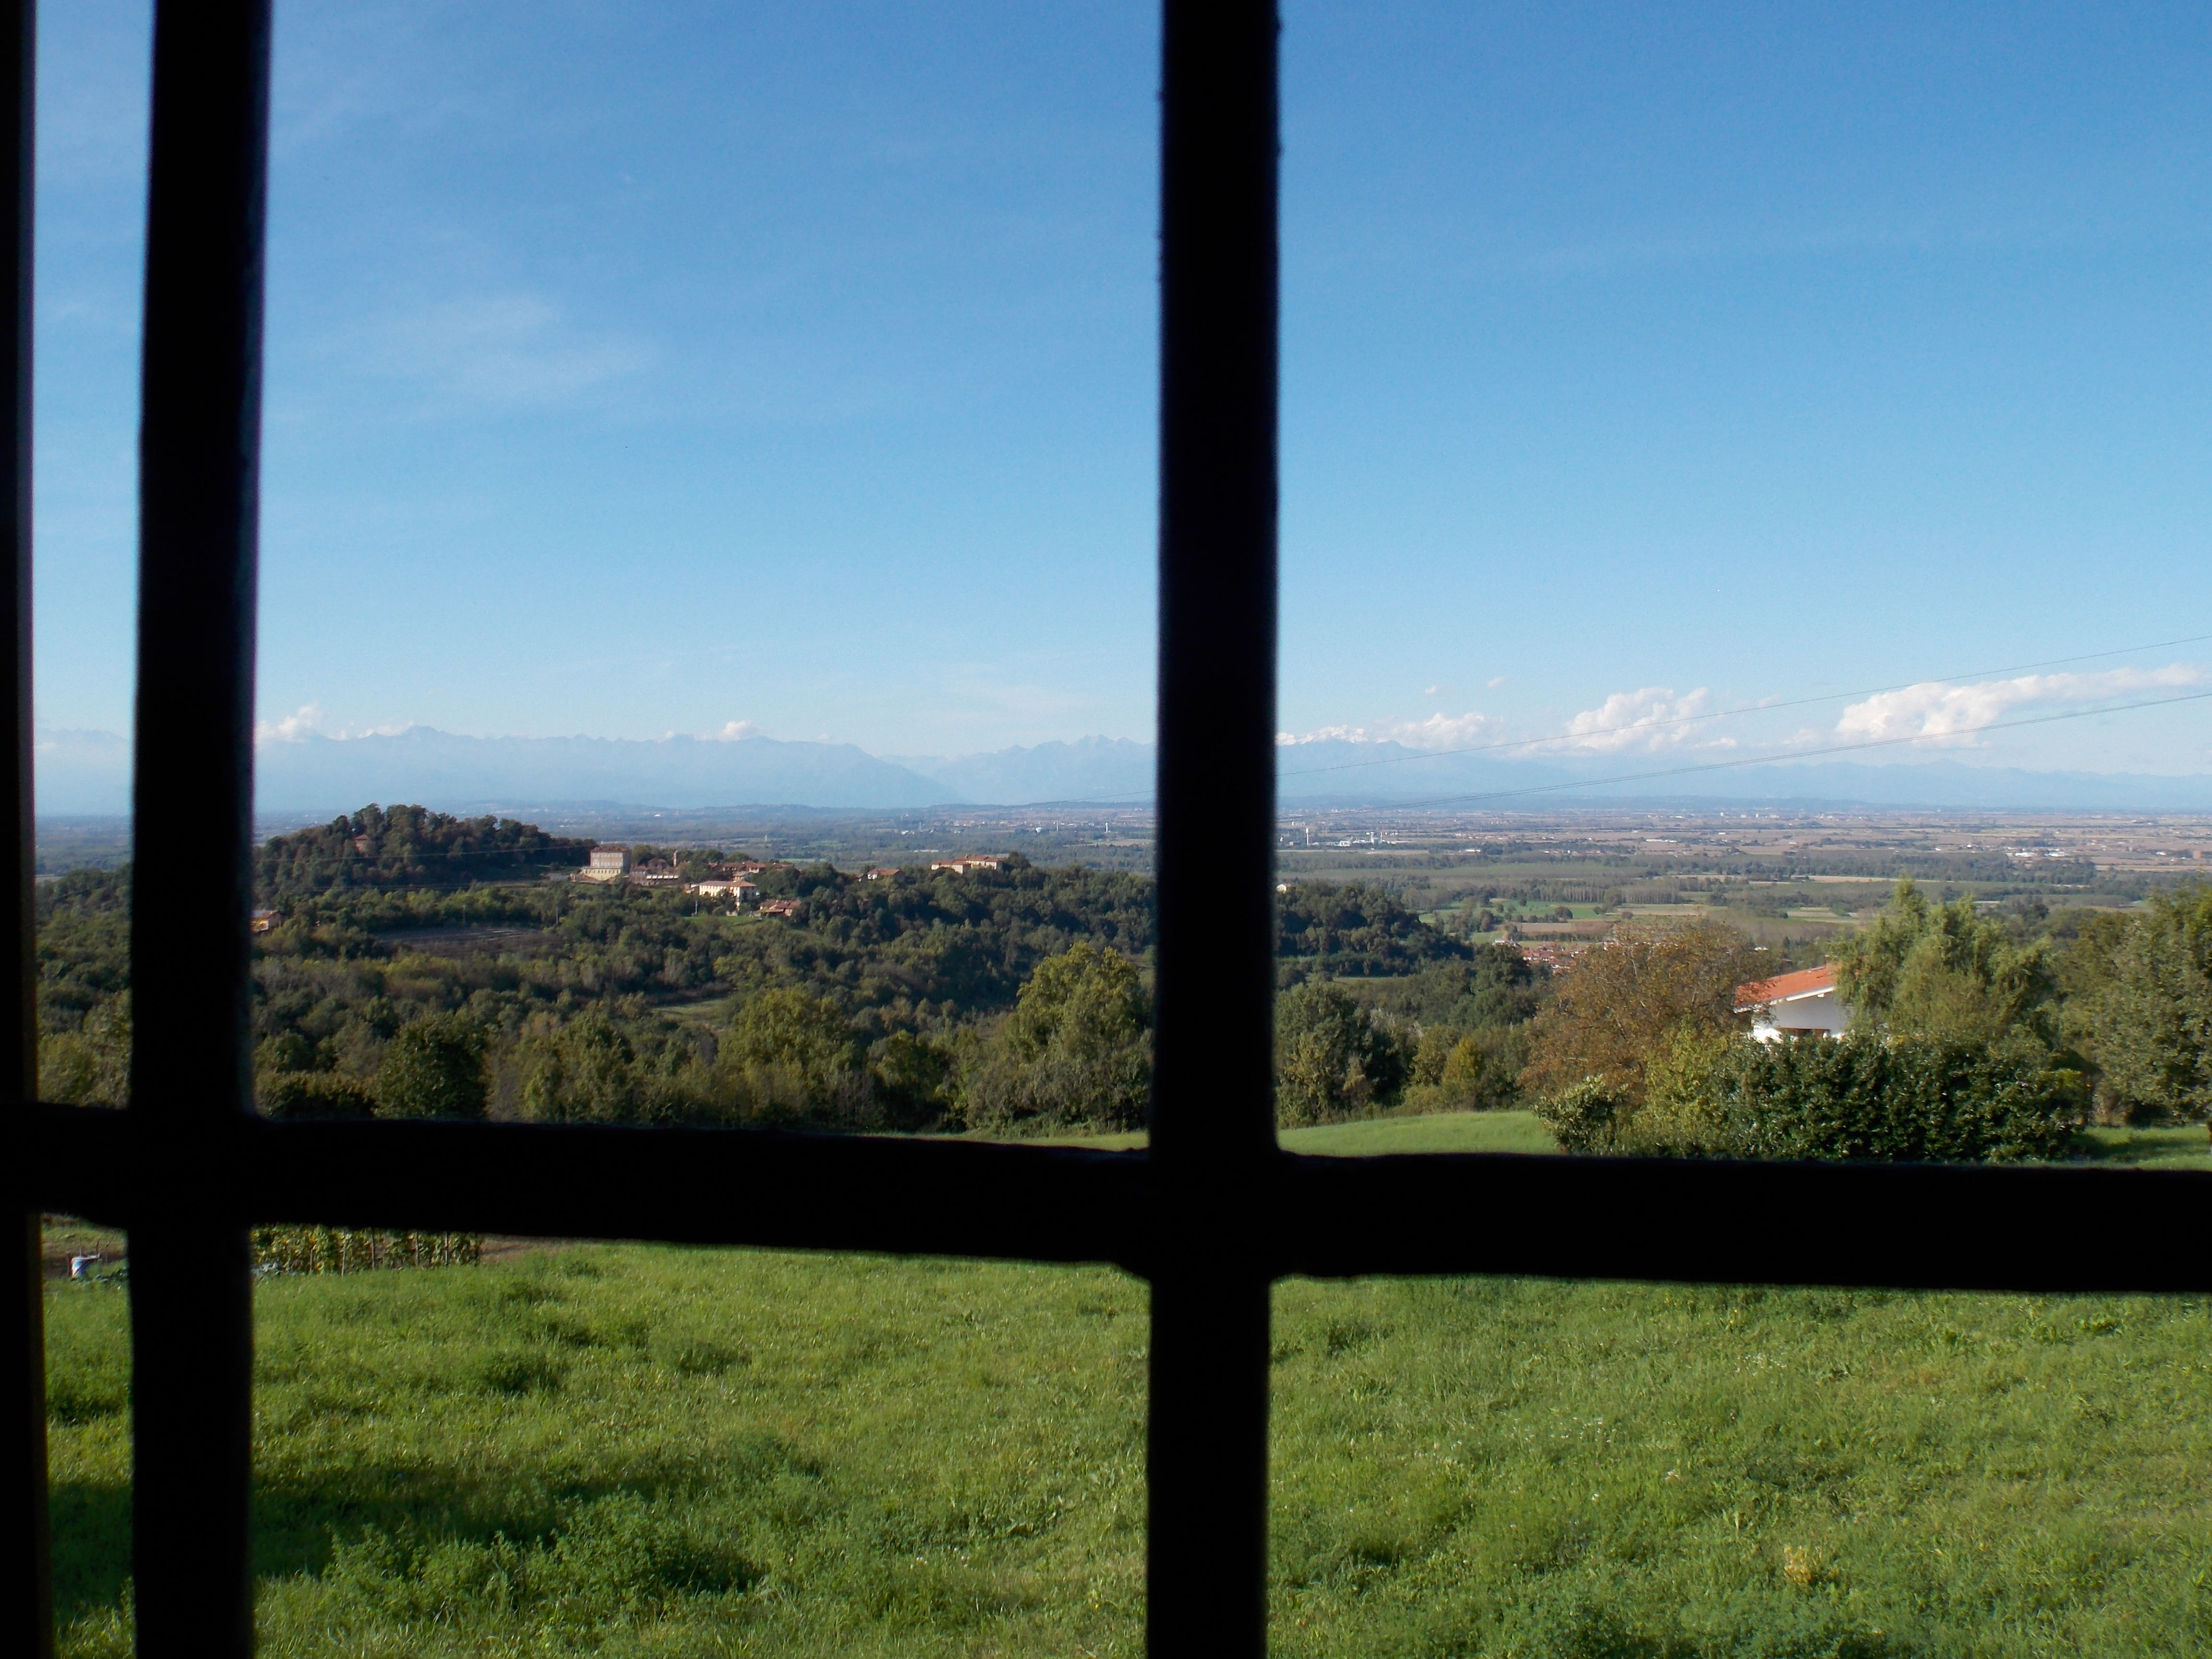 Bed & Breakfast nel Monferrato - Bed & Breakfast - Piemonte (Brusasco -  Torino - TO) ~ Vista dalla finestra della camera